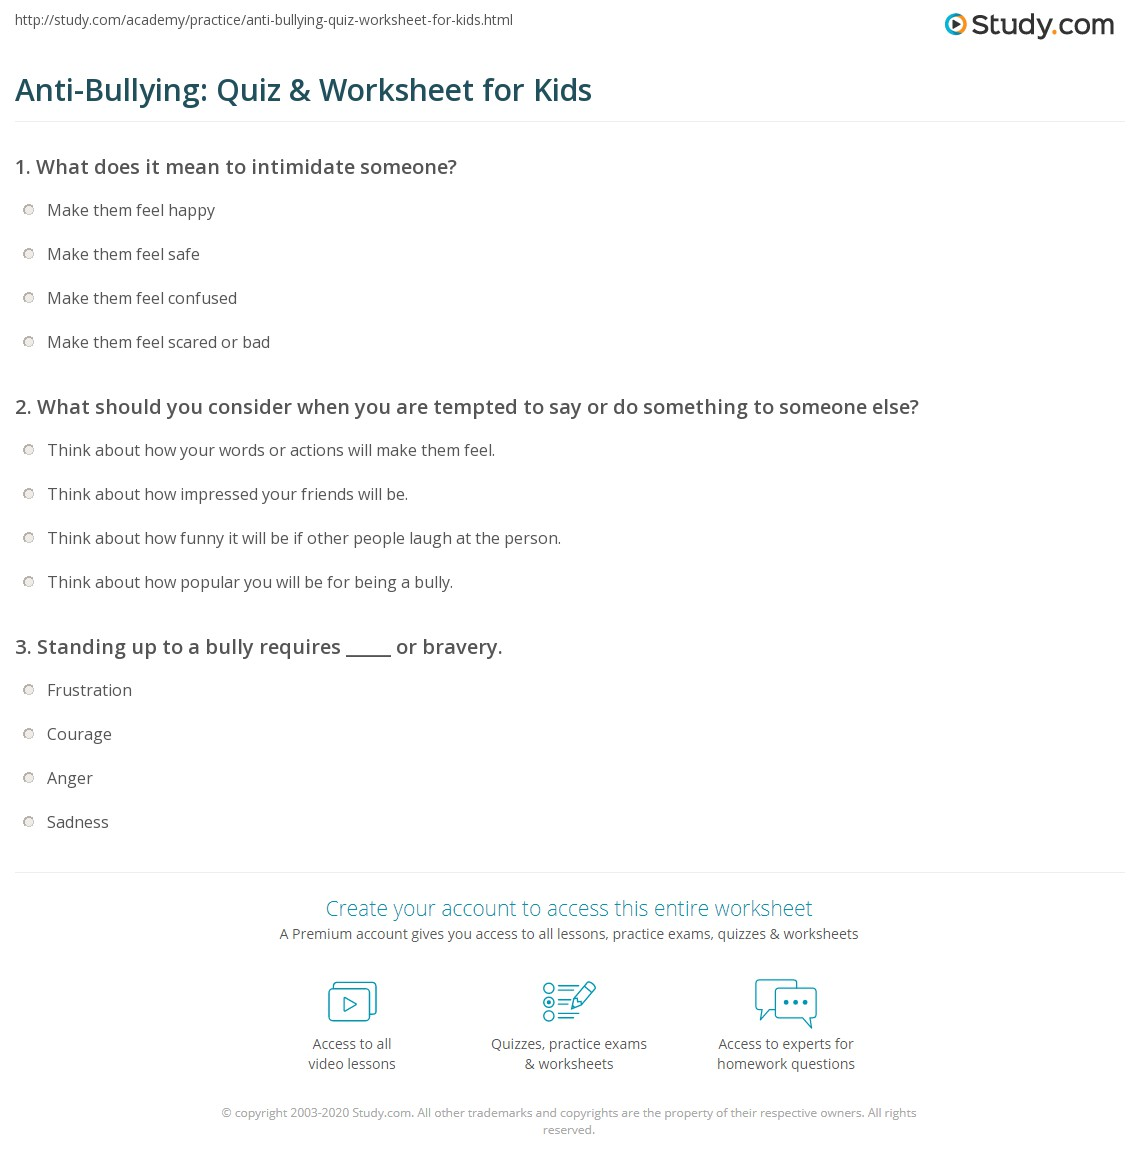 Worksheets Bullying Worksheets For Kids anti bullying quiz worksheet for kids study com print lesson worksheet